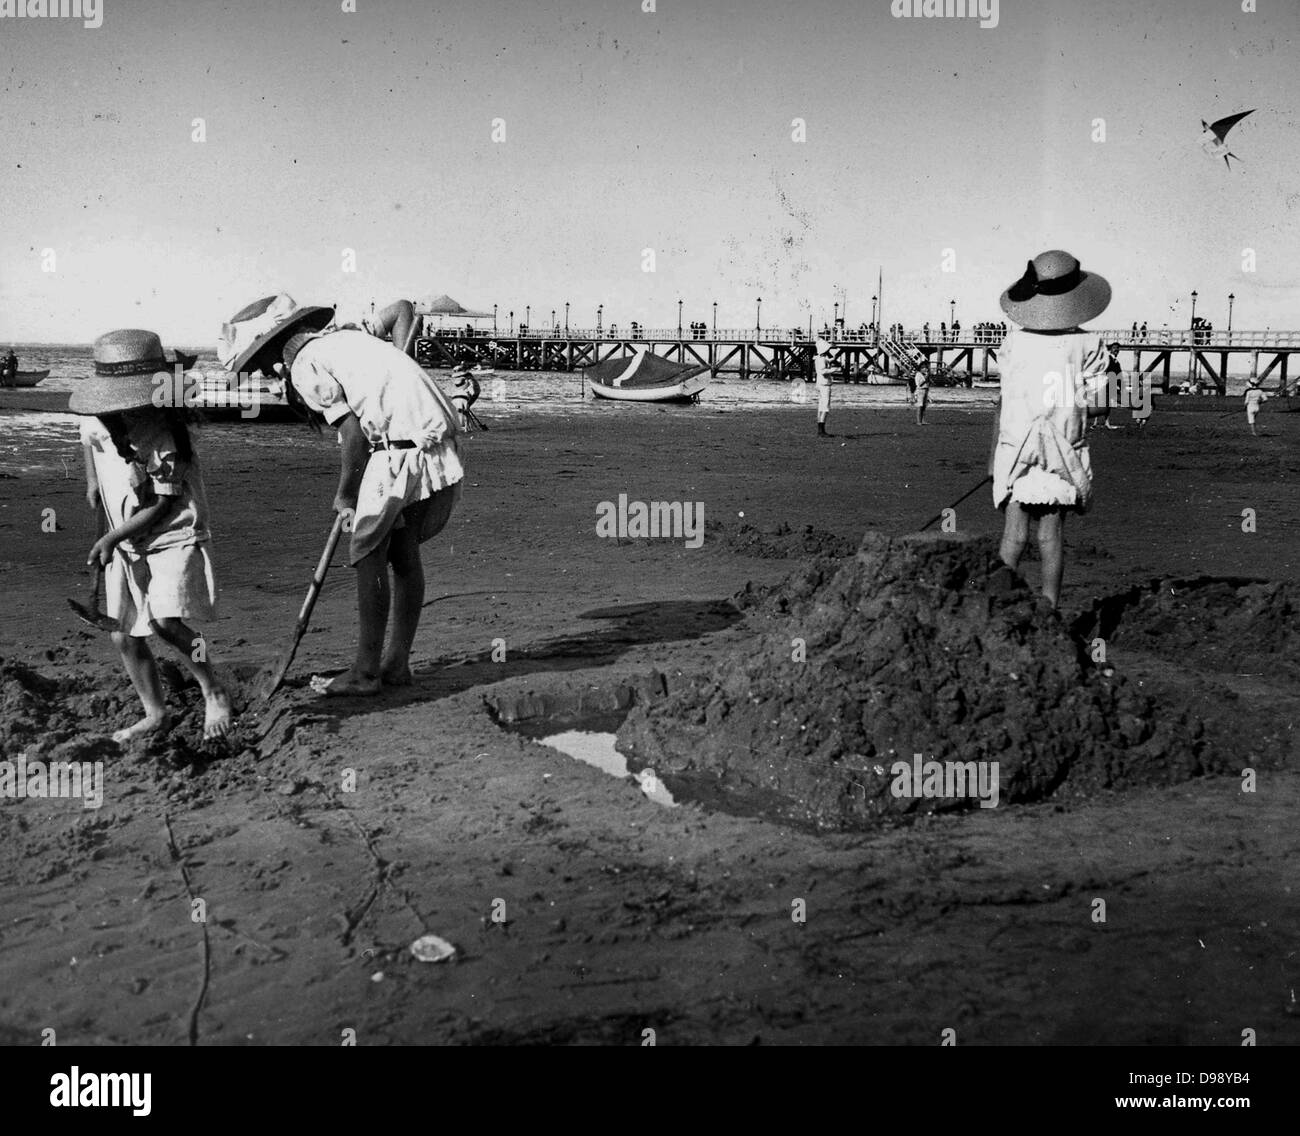 young French children play on a beach. Circa 1900 - Stock Image